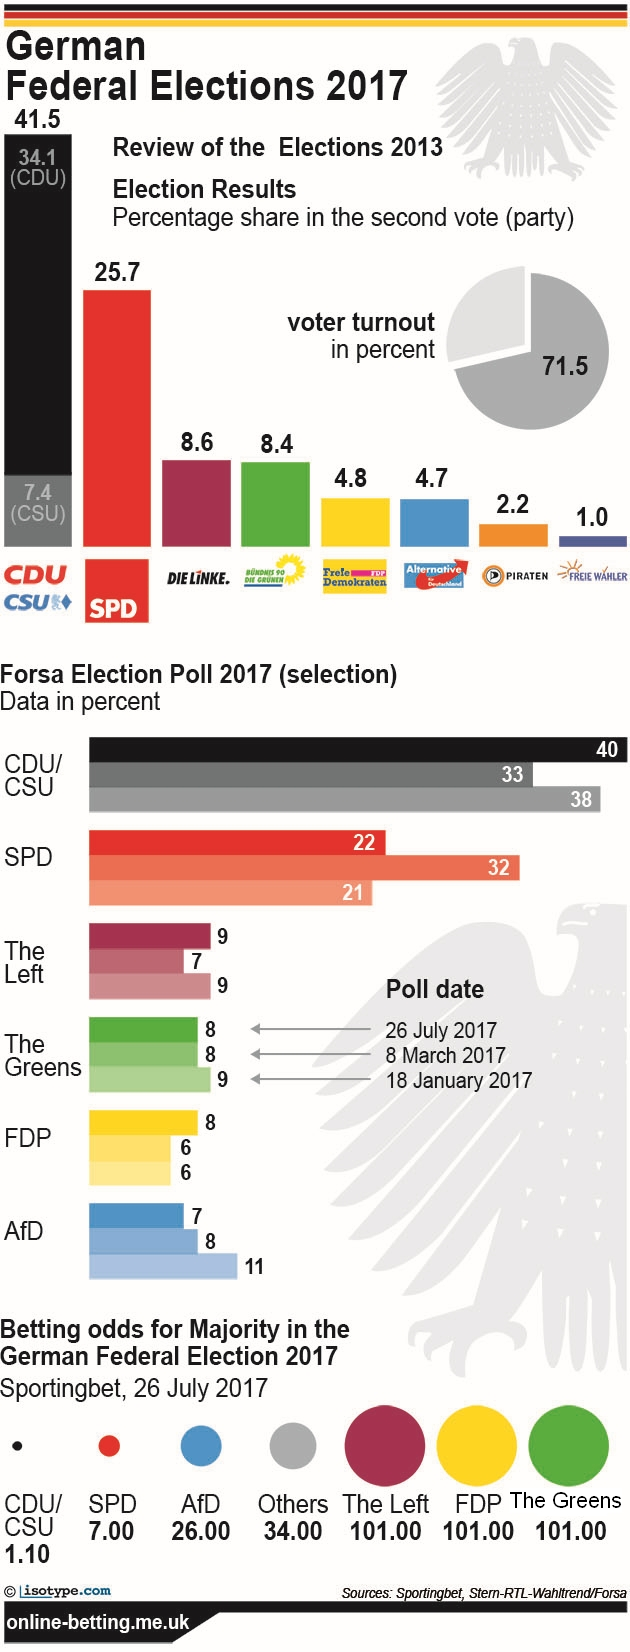 German Federal Elections 2017 Infographic